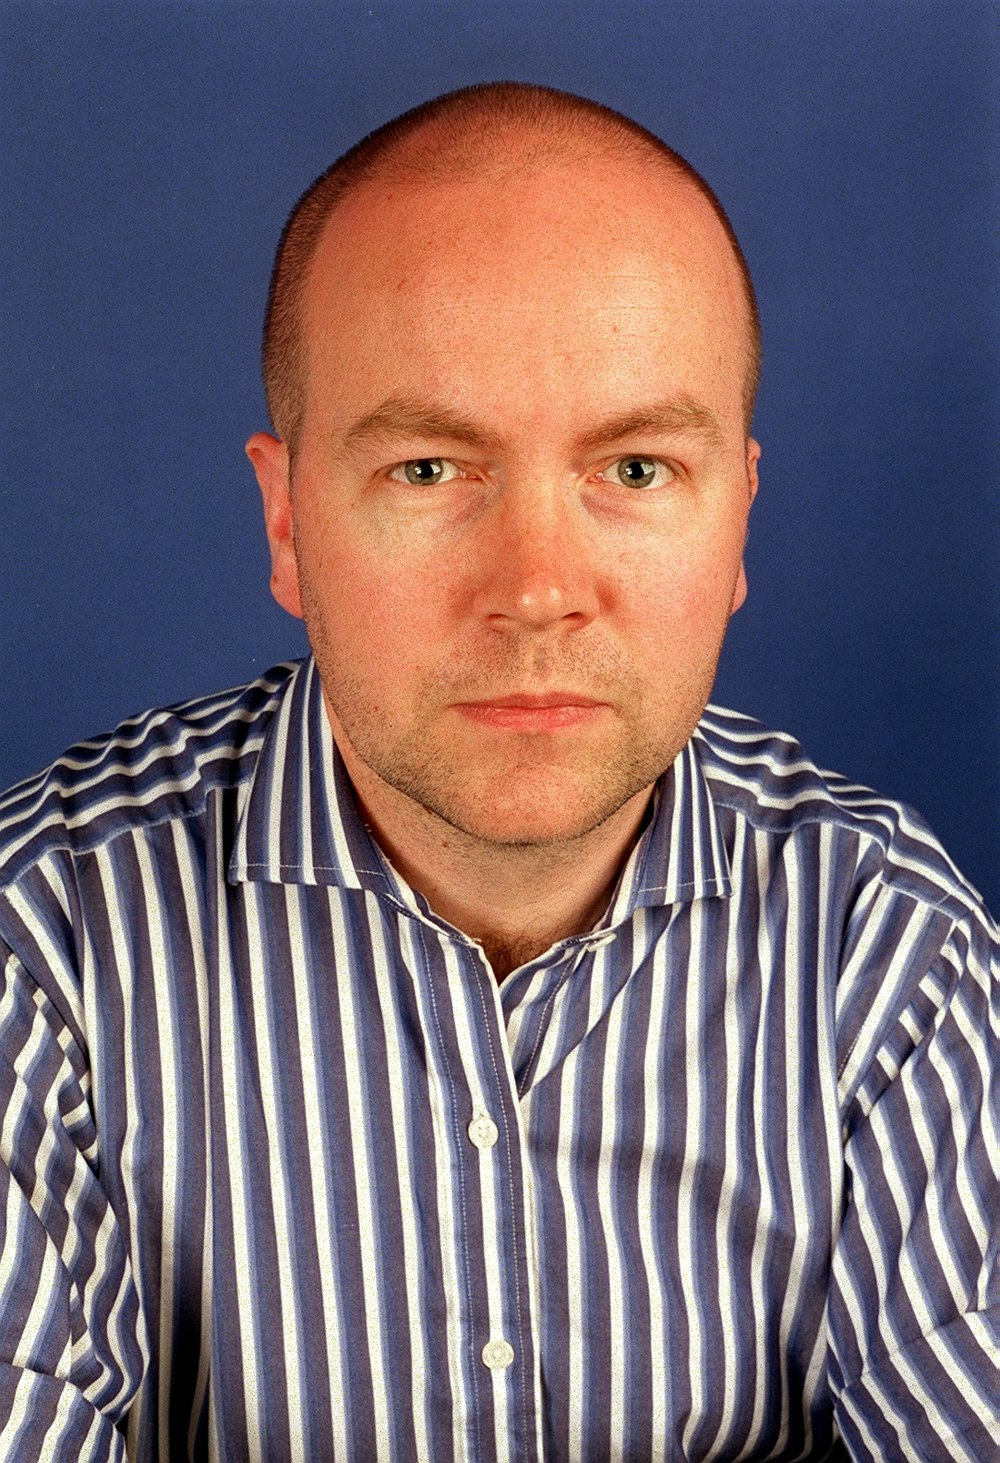 mark-taylor-portrait.jpg